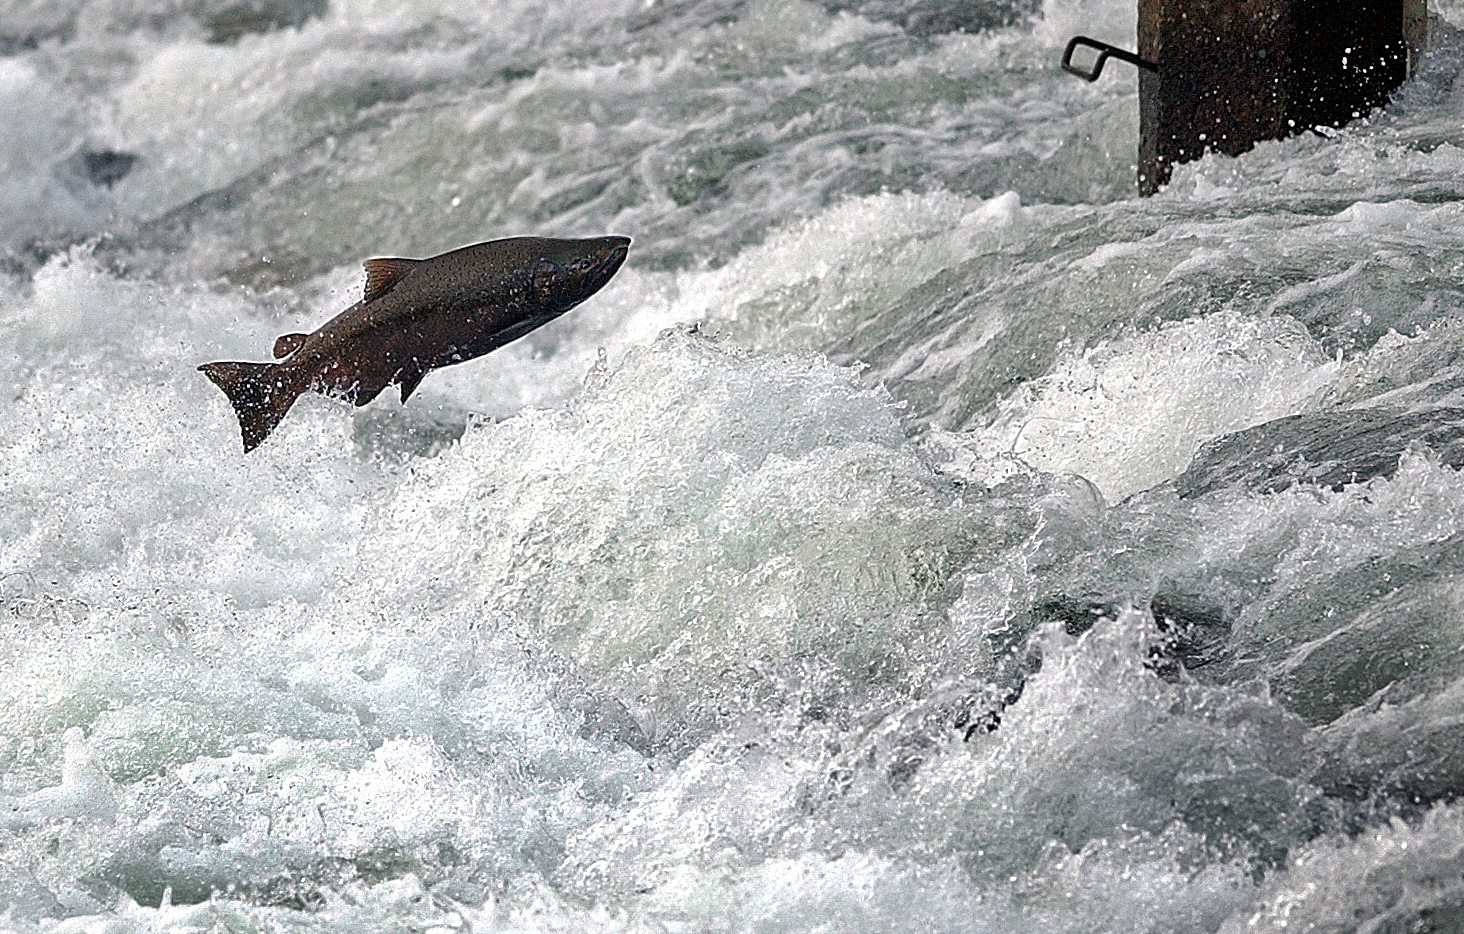 A King Salmon leaps at the gates near the Nimbus Salmon Hatchery.